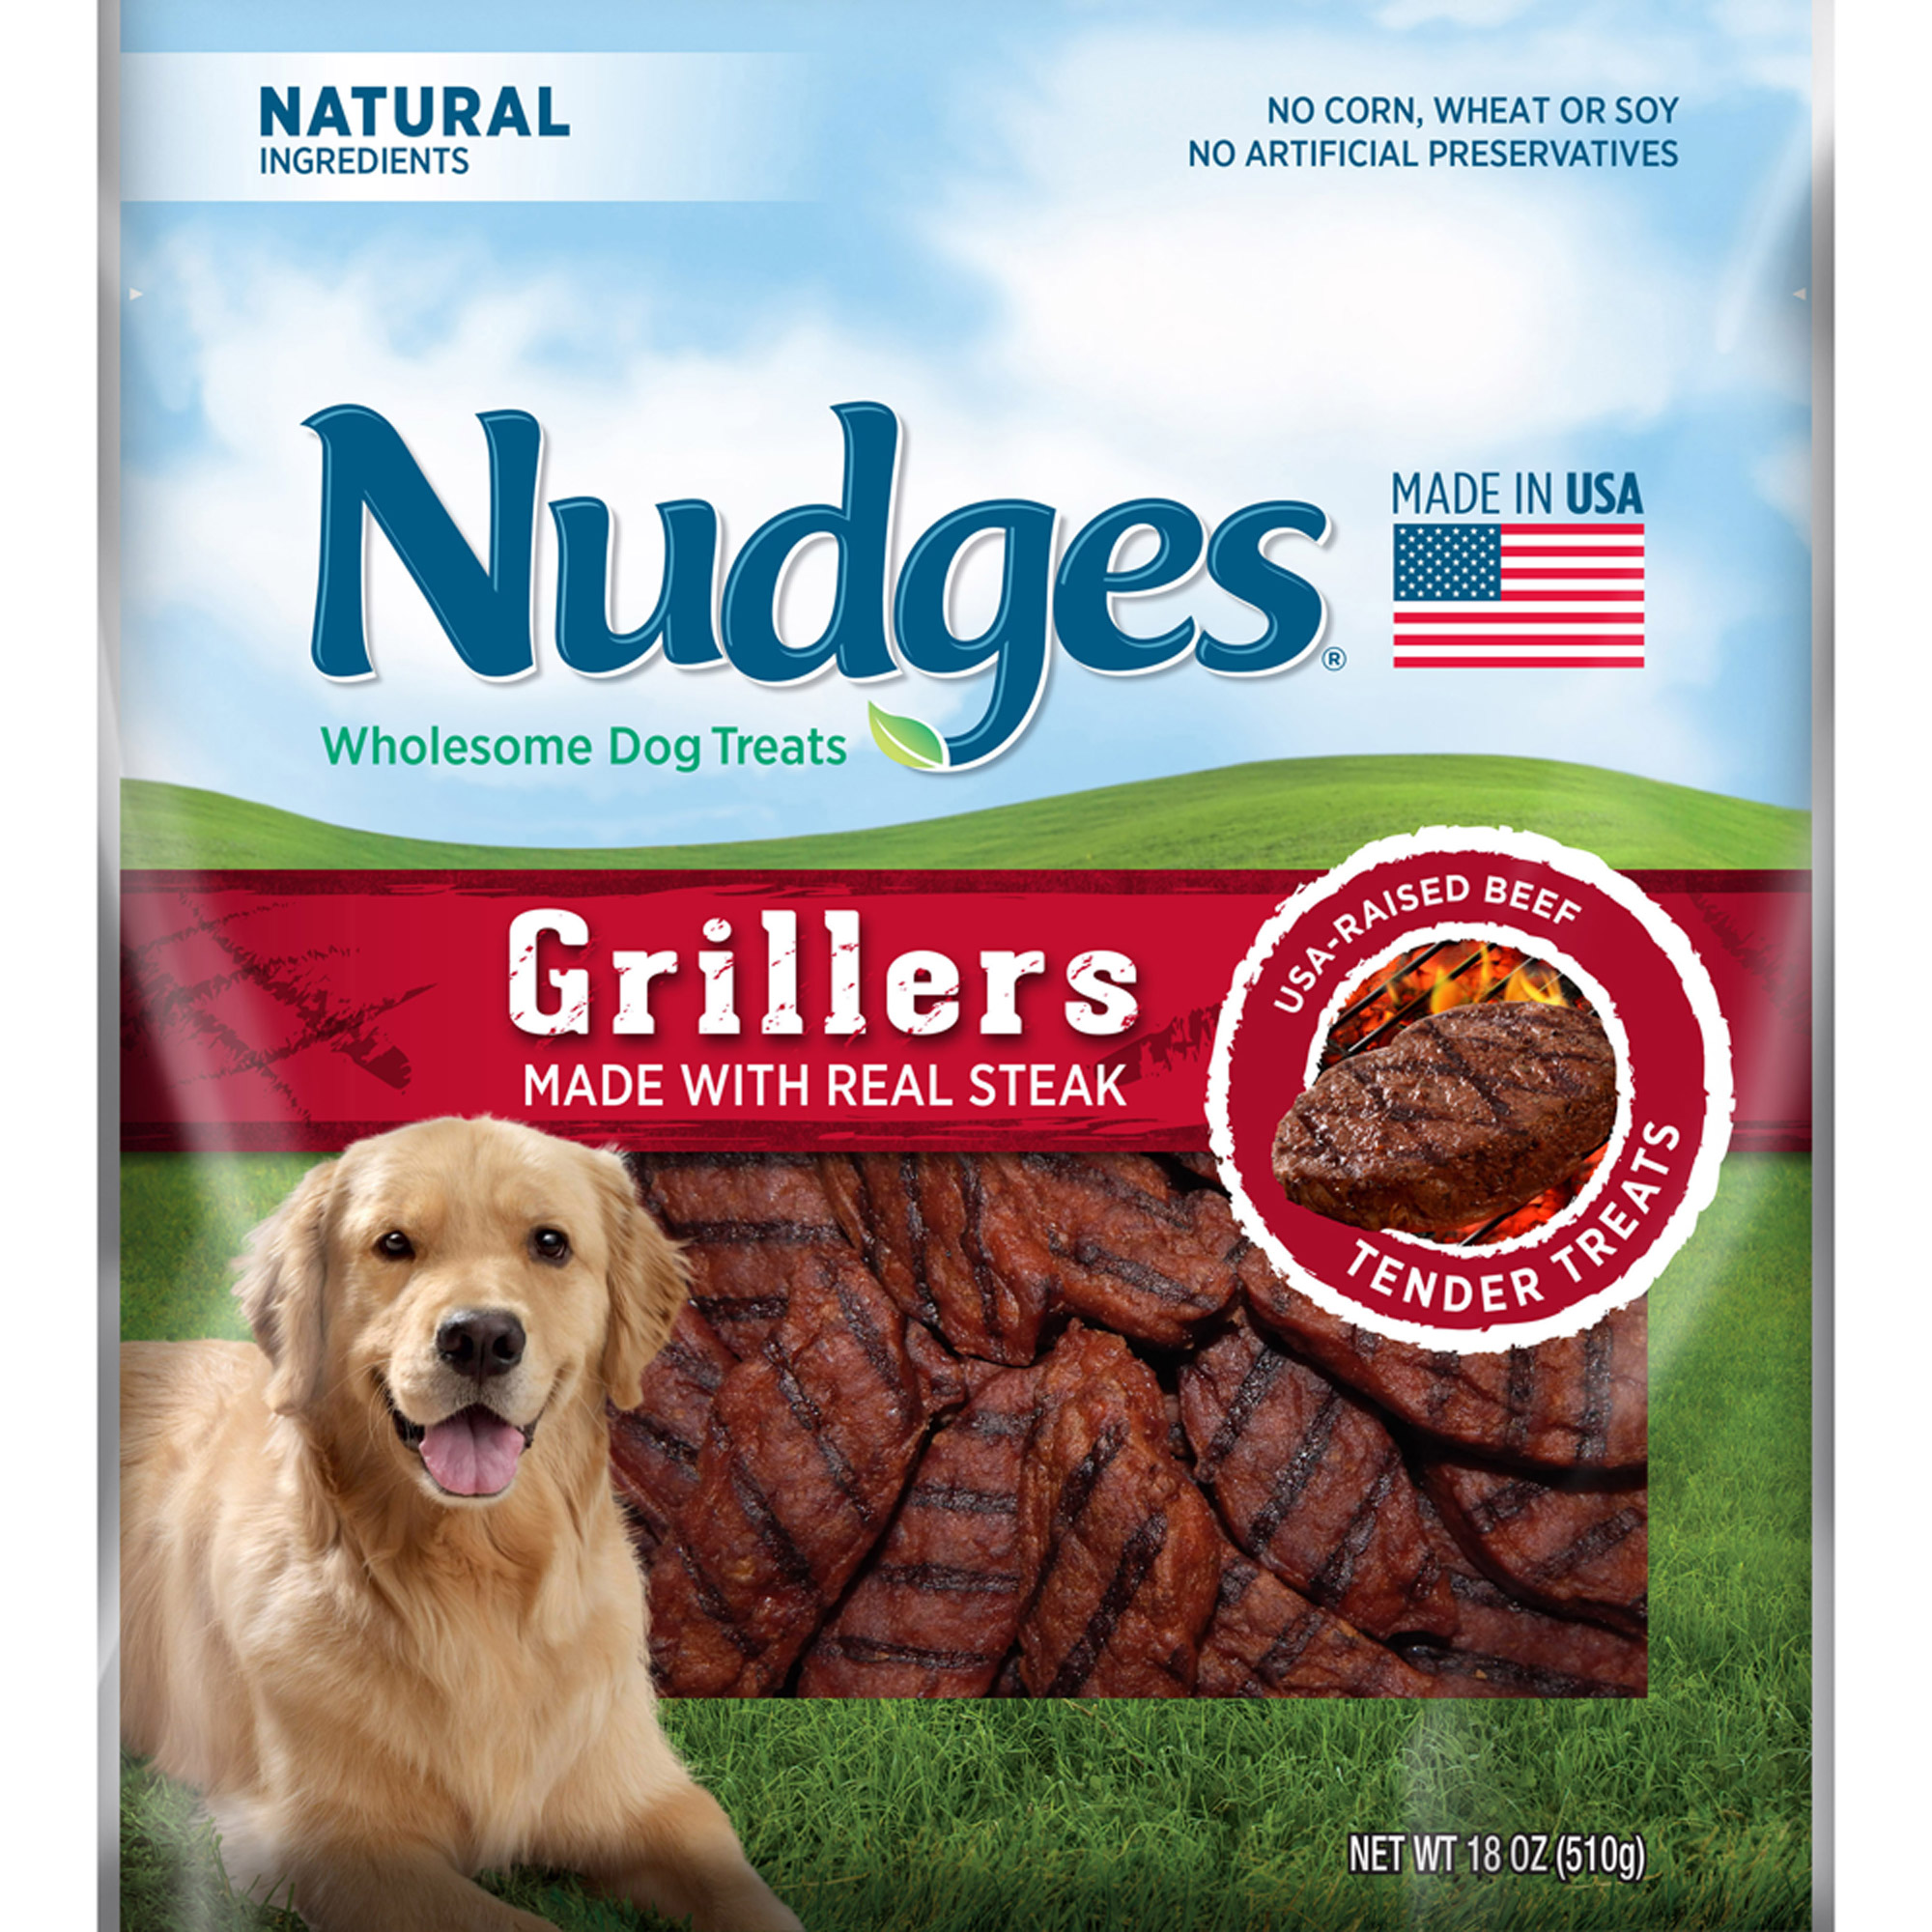 Nudges Steak Grillers Wholesome Dog Treats 18 oz. Bag